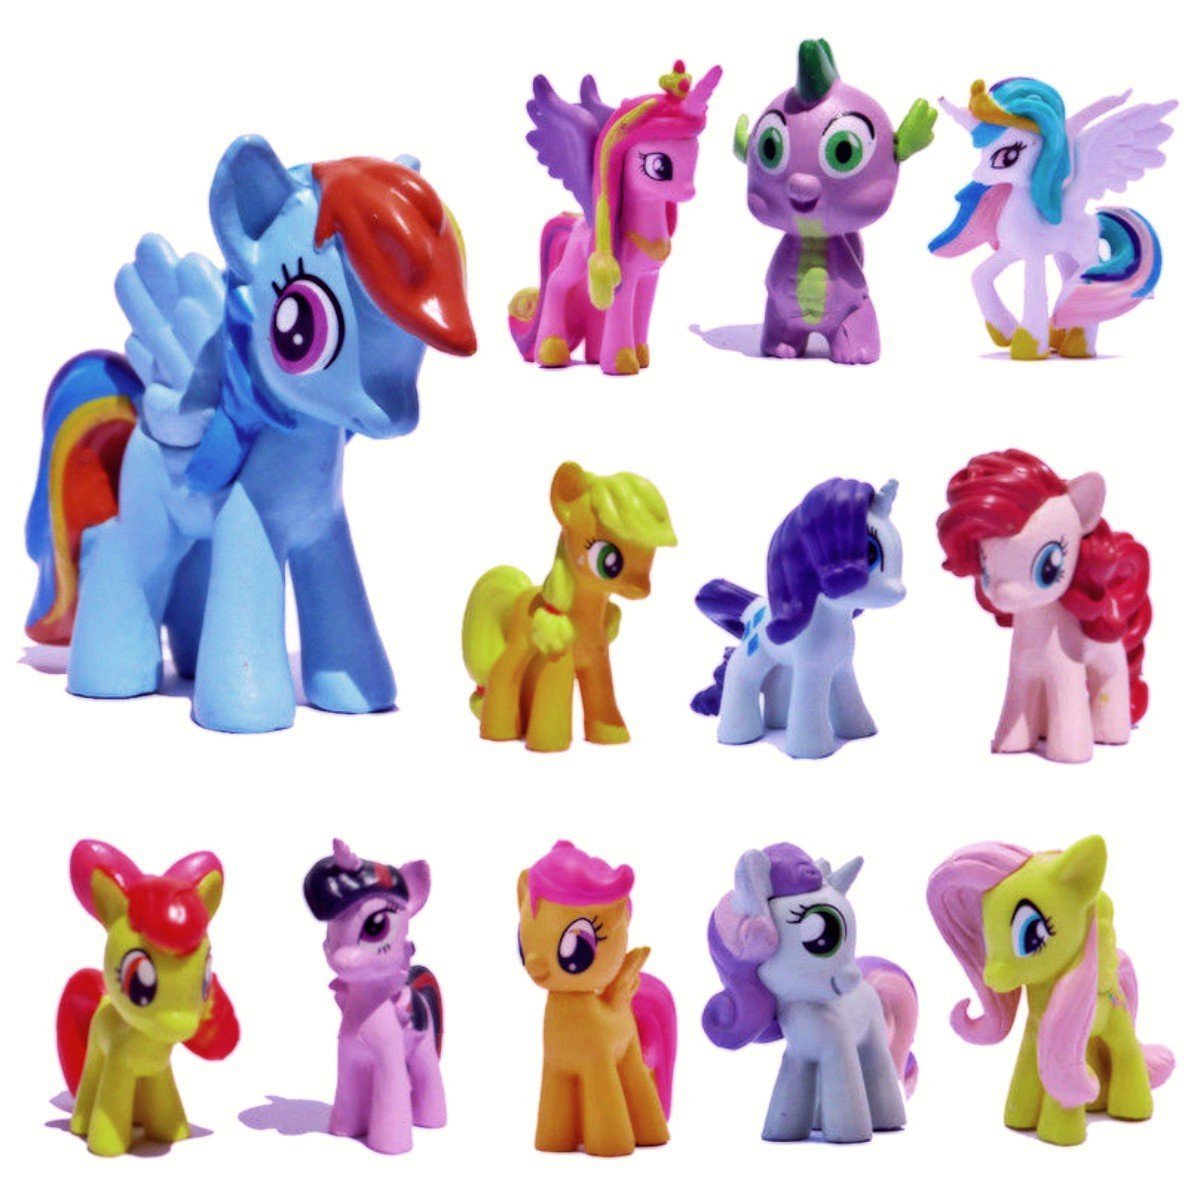 My Little Pony Set 12 pcs Toys | PVC Mini Figure Collection Playset | Kids Decor Cupcake Topper + Pony Stickers by My Little Pony (Image #7)